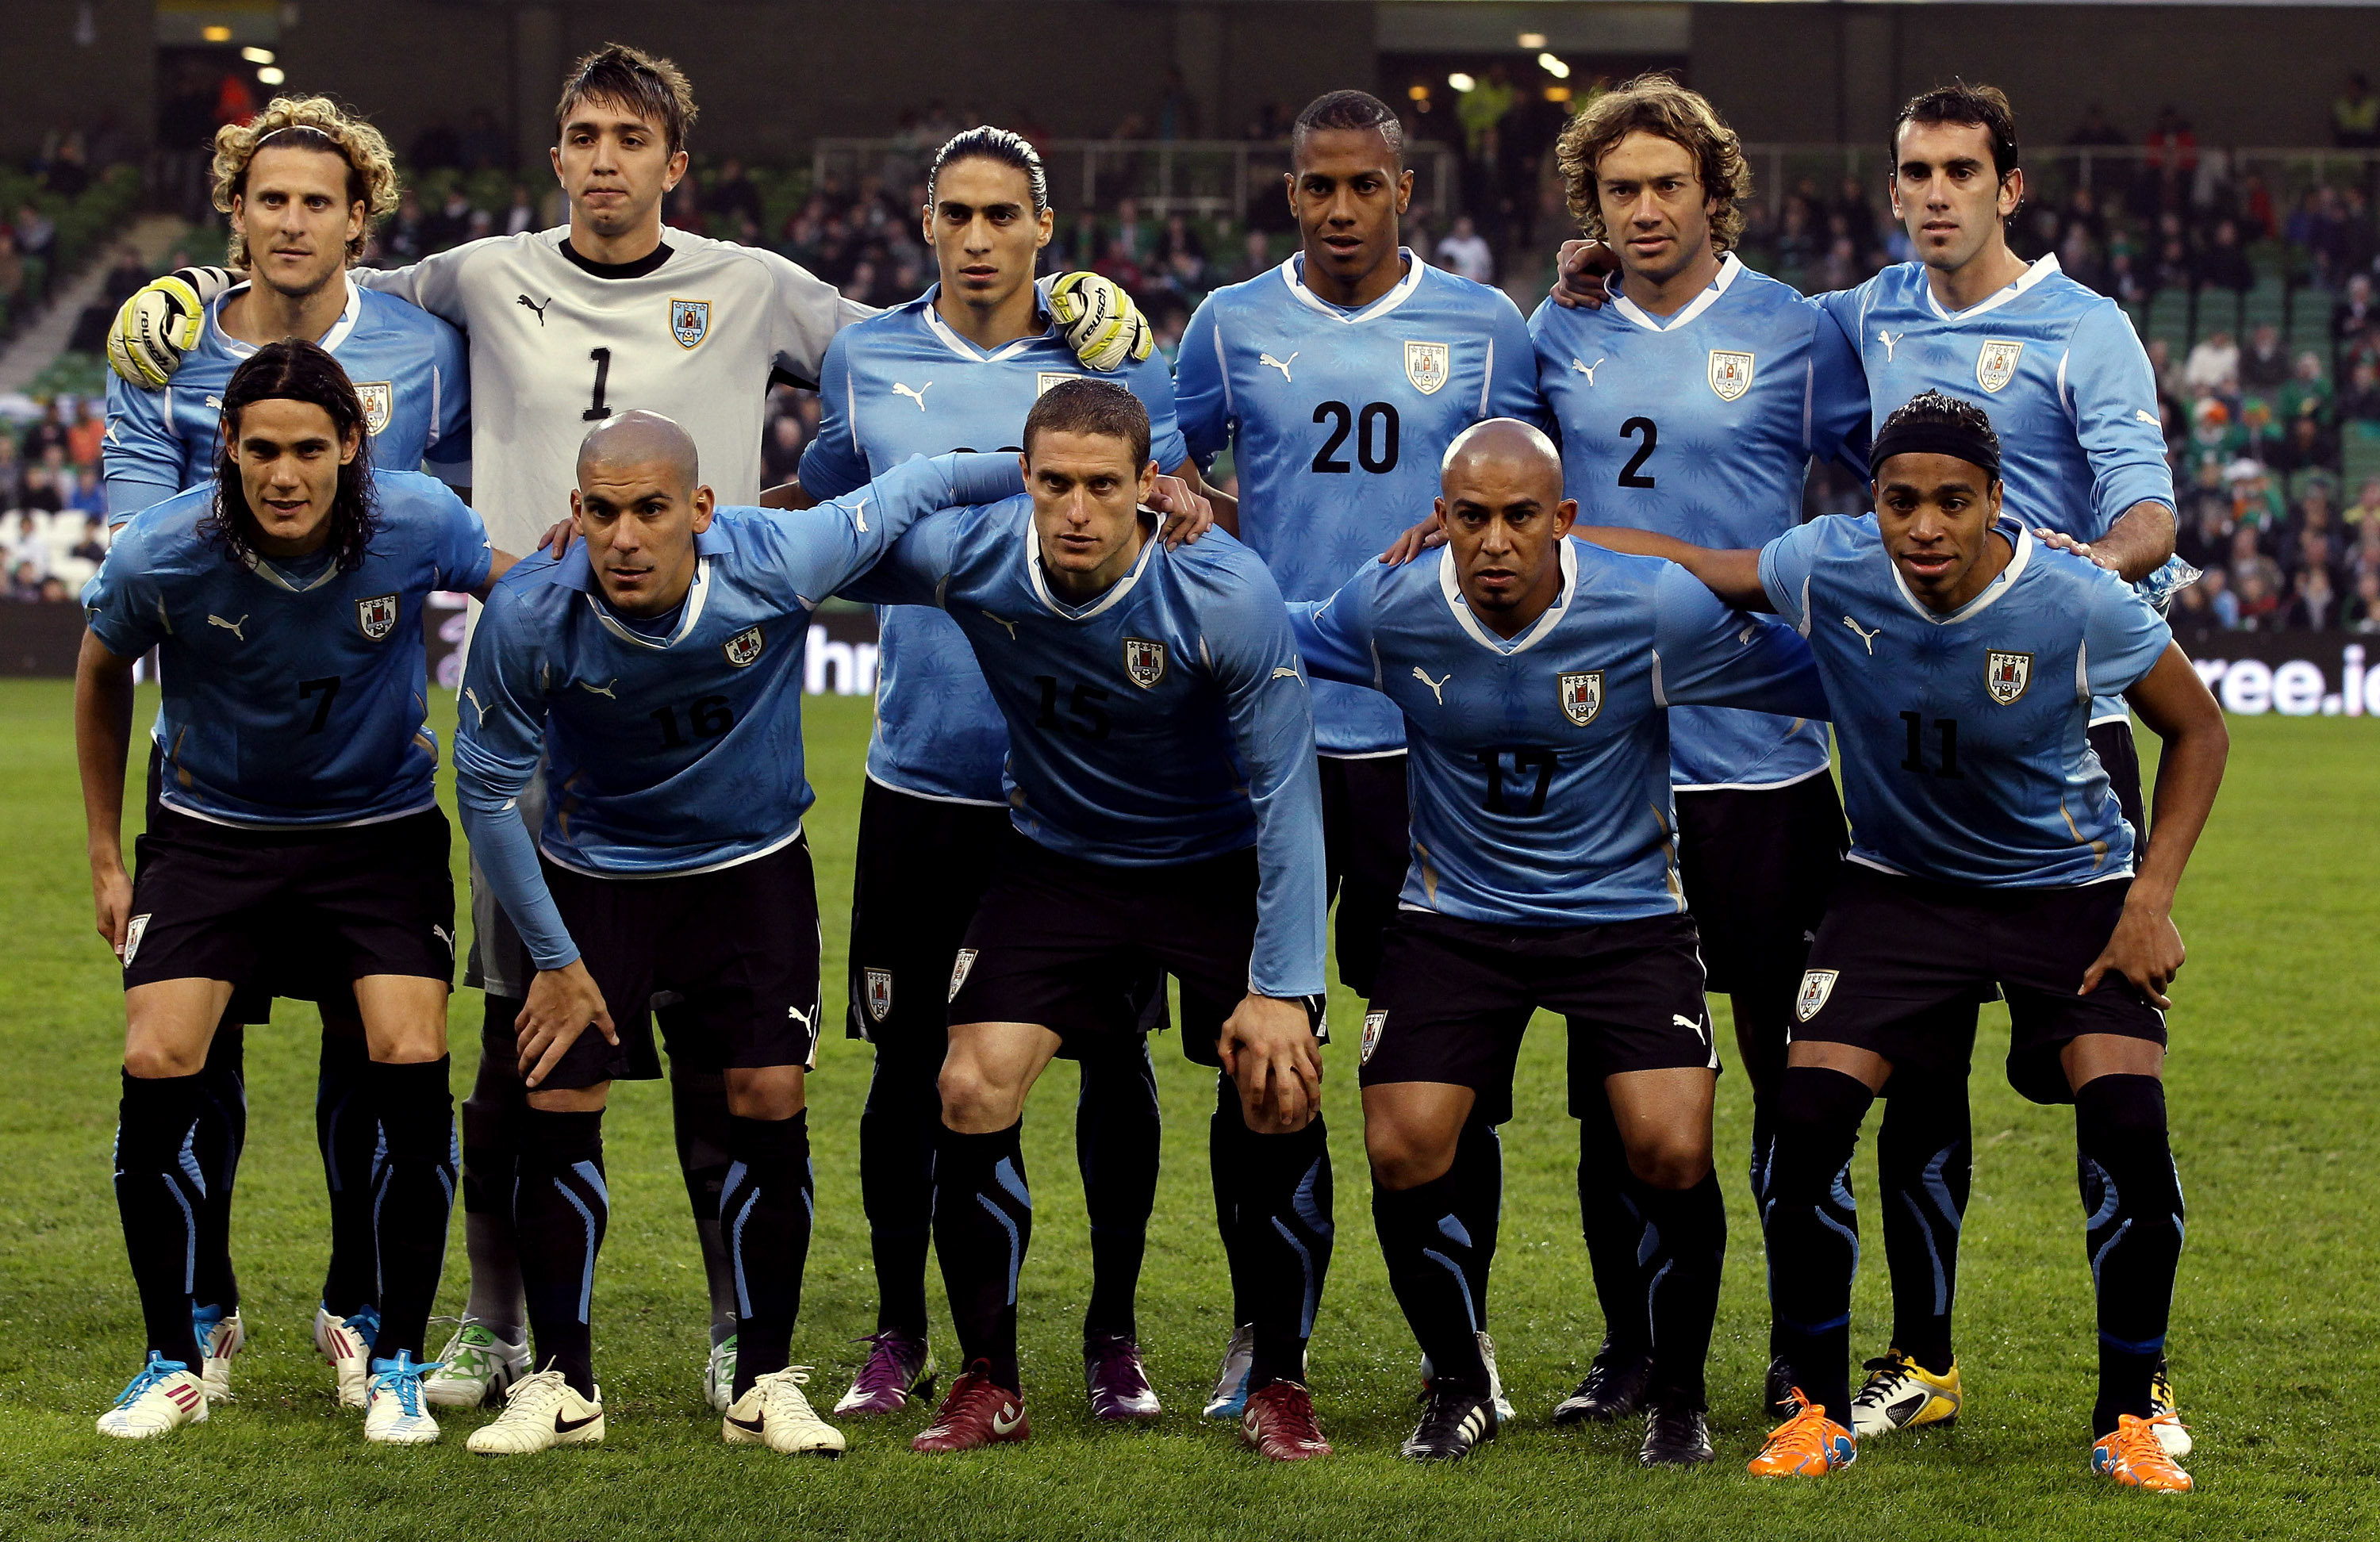 DUBLIN, IRELAND - MARCH 29:  Uruguay team line up for a team photo during the International Friendly match between Republic of Ireland and Uruguay at the Aviva Stadium on March 29, 2011 in Dublin, Ireland.  (Photo by Ian Walton/Getty Images)